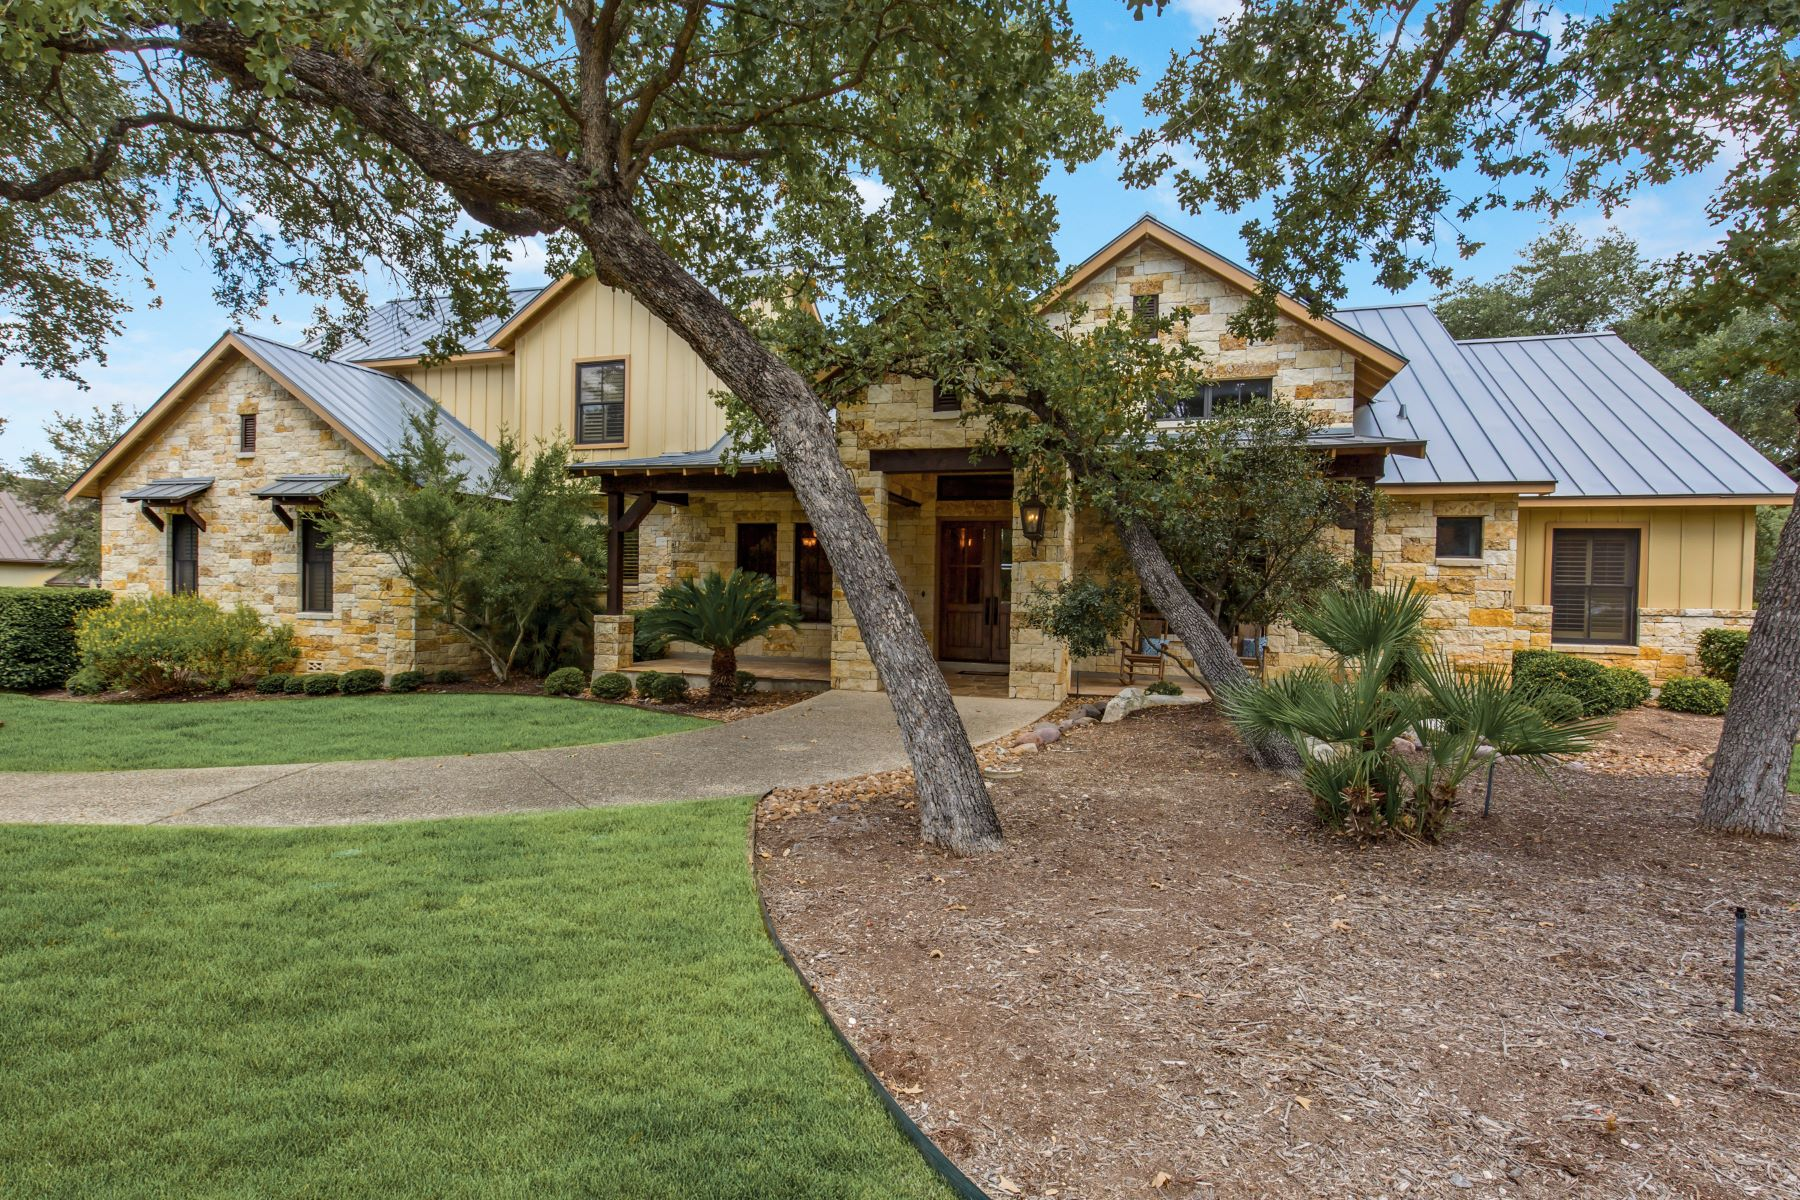 Single Family Homes for Active at Stunning Home on Spectacular Property 148 Riverwood Boerne, Texas 78006 United States